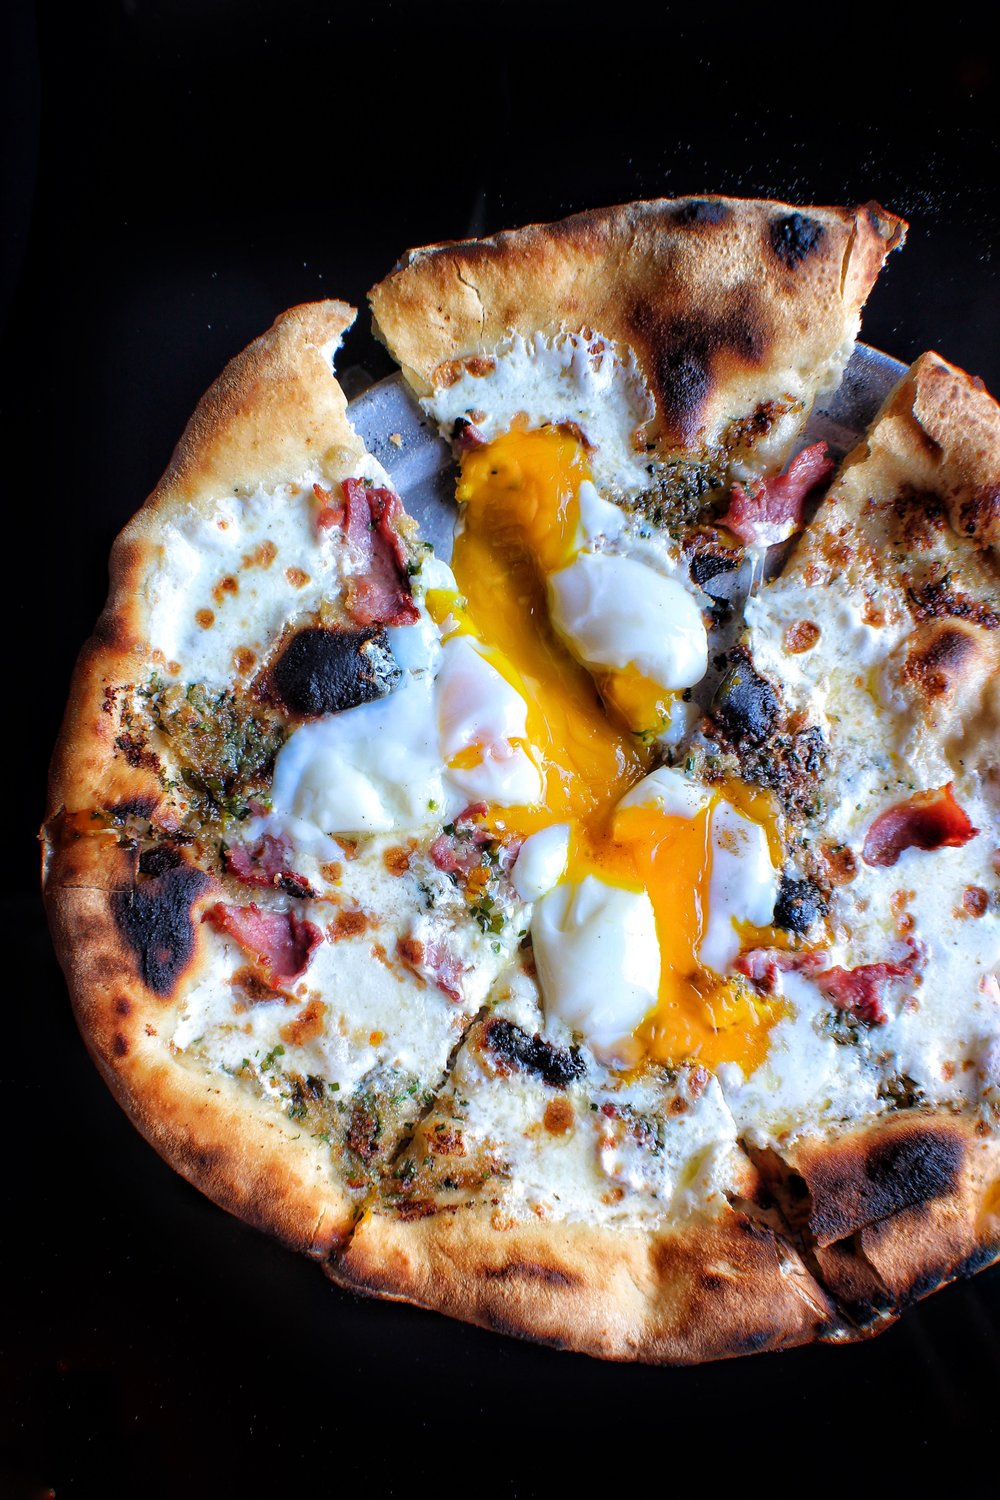 Bacon, Egg, and Cheese PIZZA  Mozarella di Bufala, Country Ham, Hen Egg